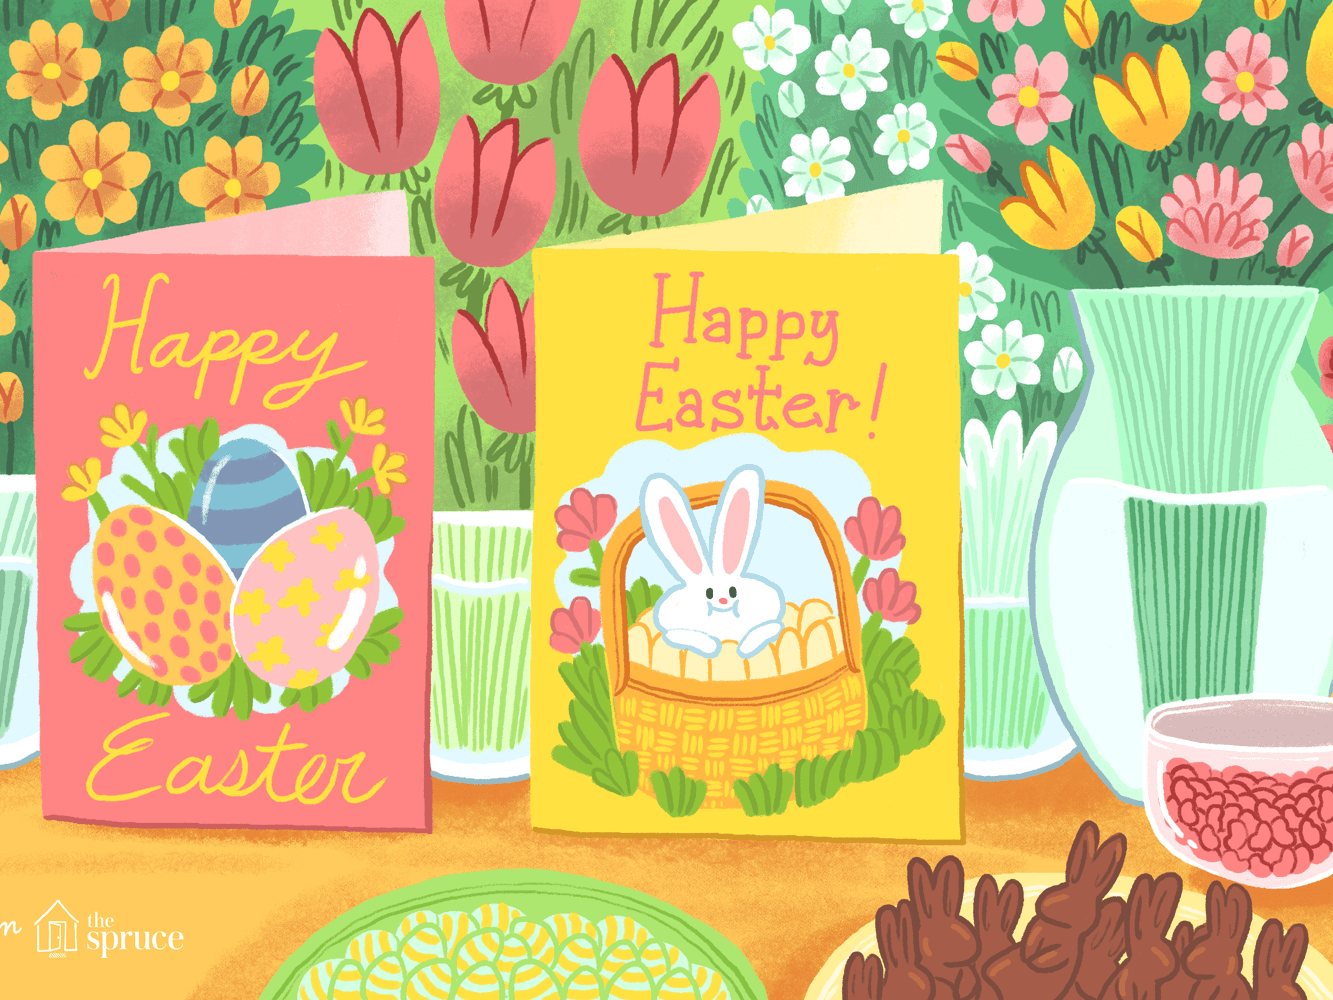 10 Handmade Easter Bunny Tails Mini Square Note Cards with Envelopes